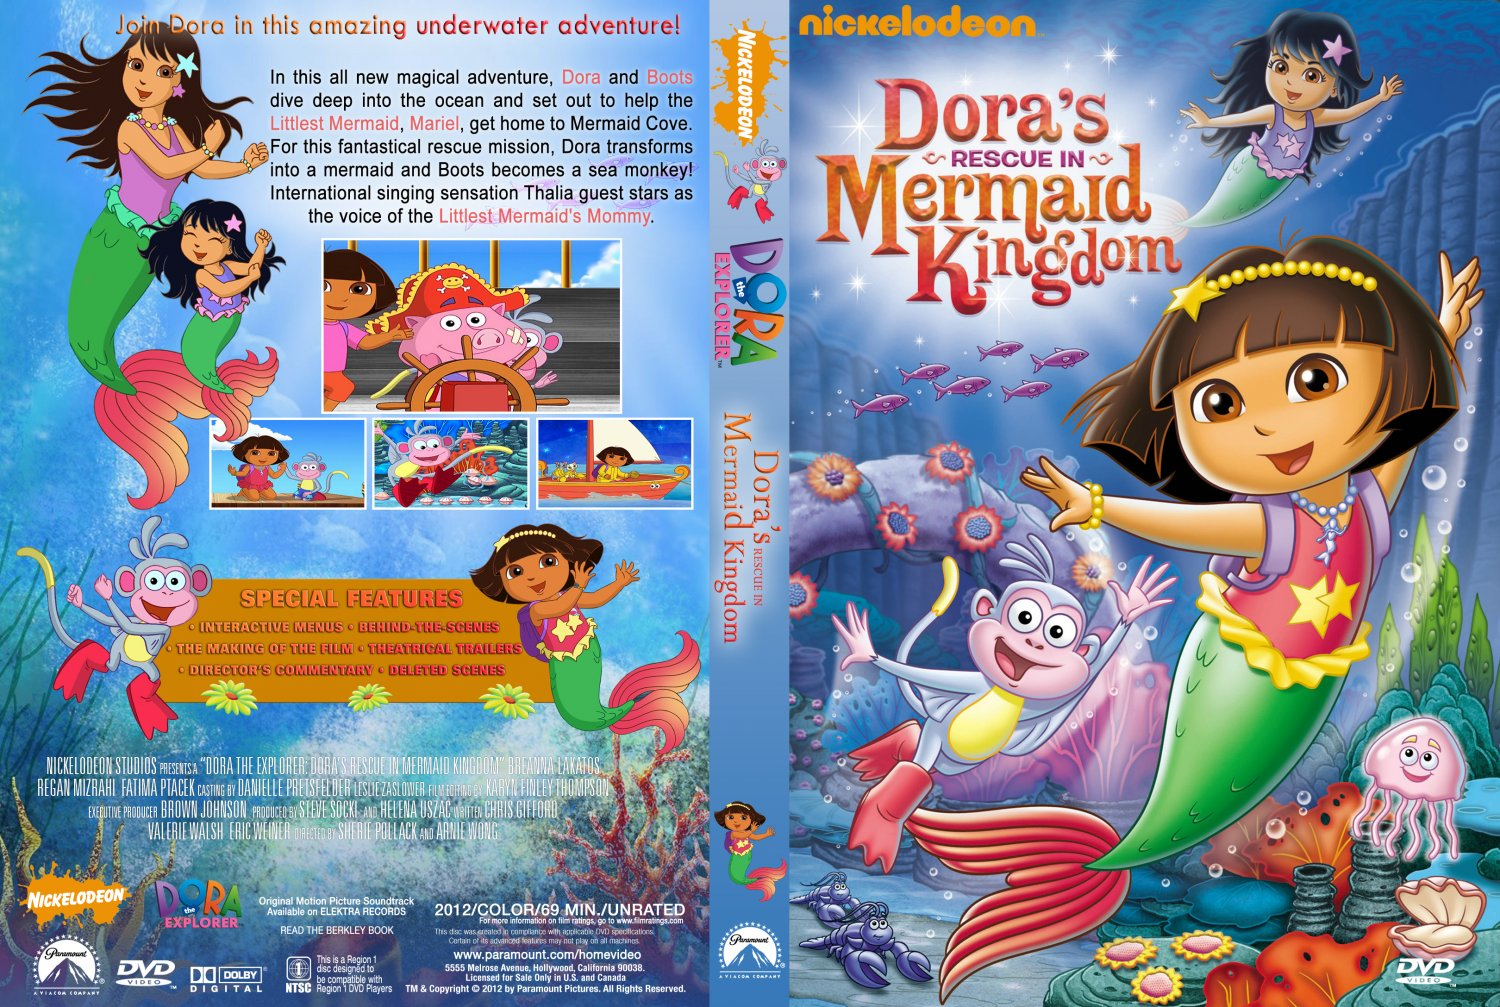 Dora DVD Cover http://www.dvd-covers.org/art/DVD_Covers/Movie_DVD_Custom_Covers/Dora_the_Explorer_Dora_s_Rescue_in_Mermaid_Kingdom_Cover.jpg.html?g2_imageViewsIndex=1